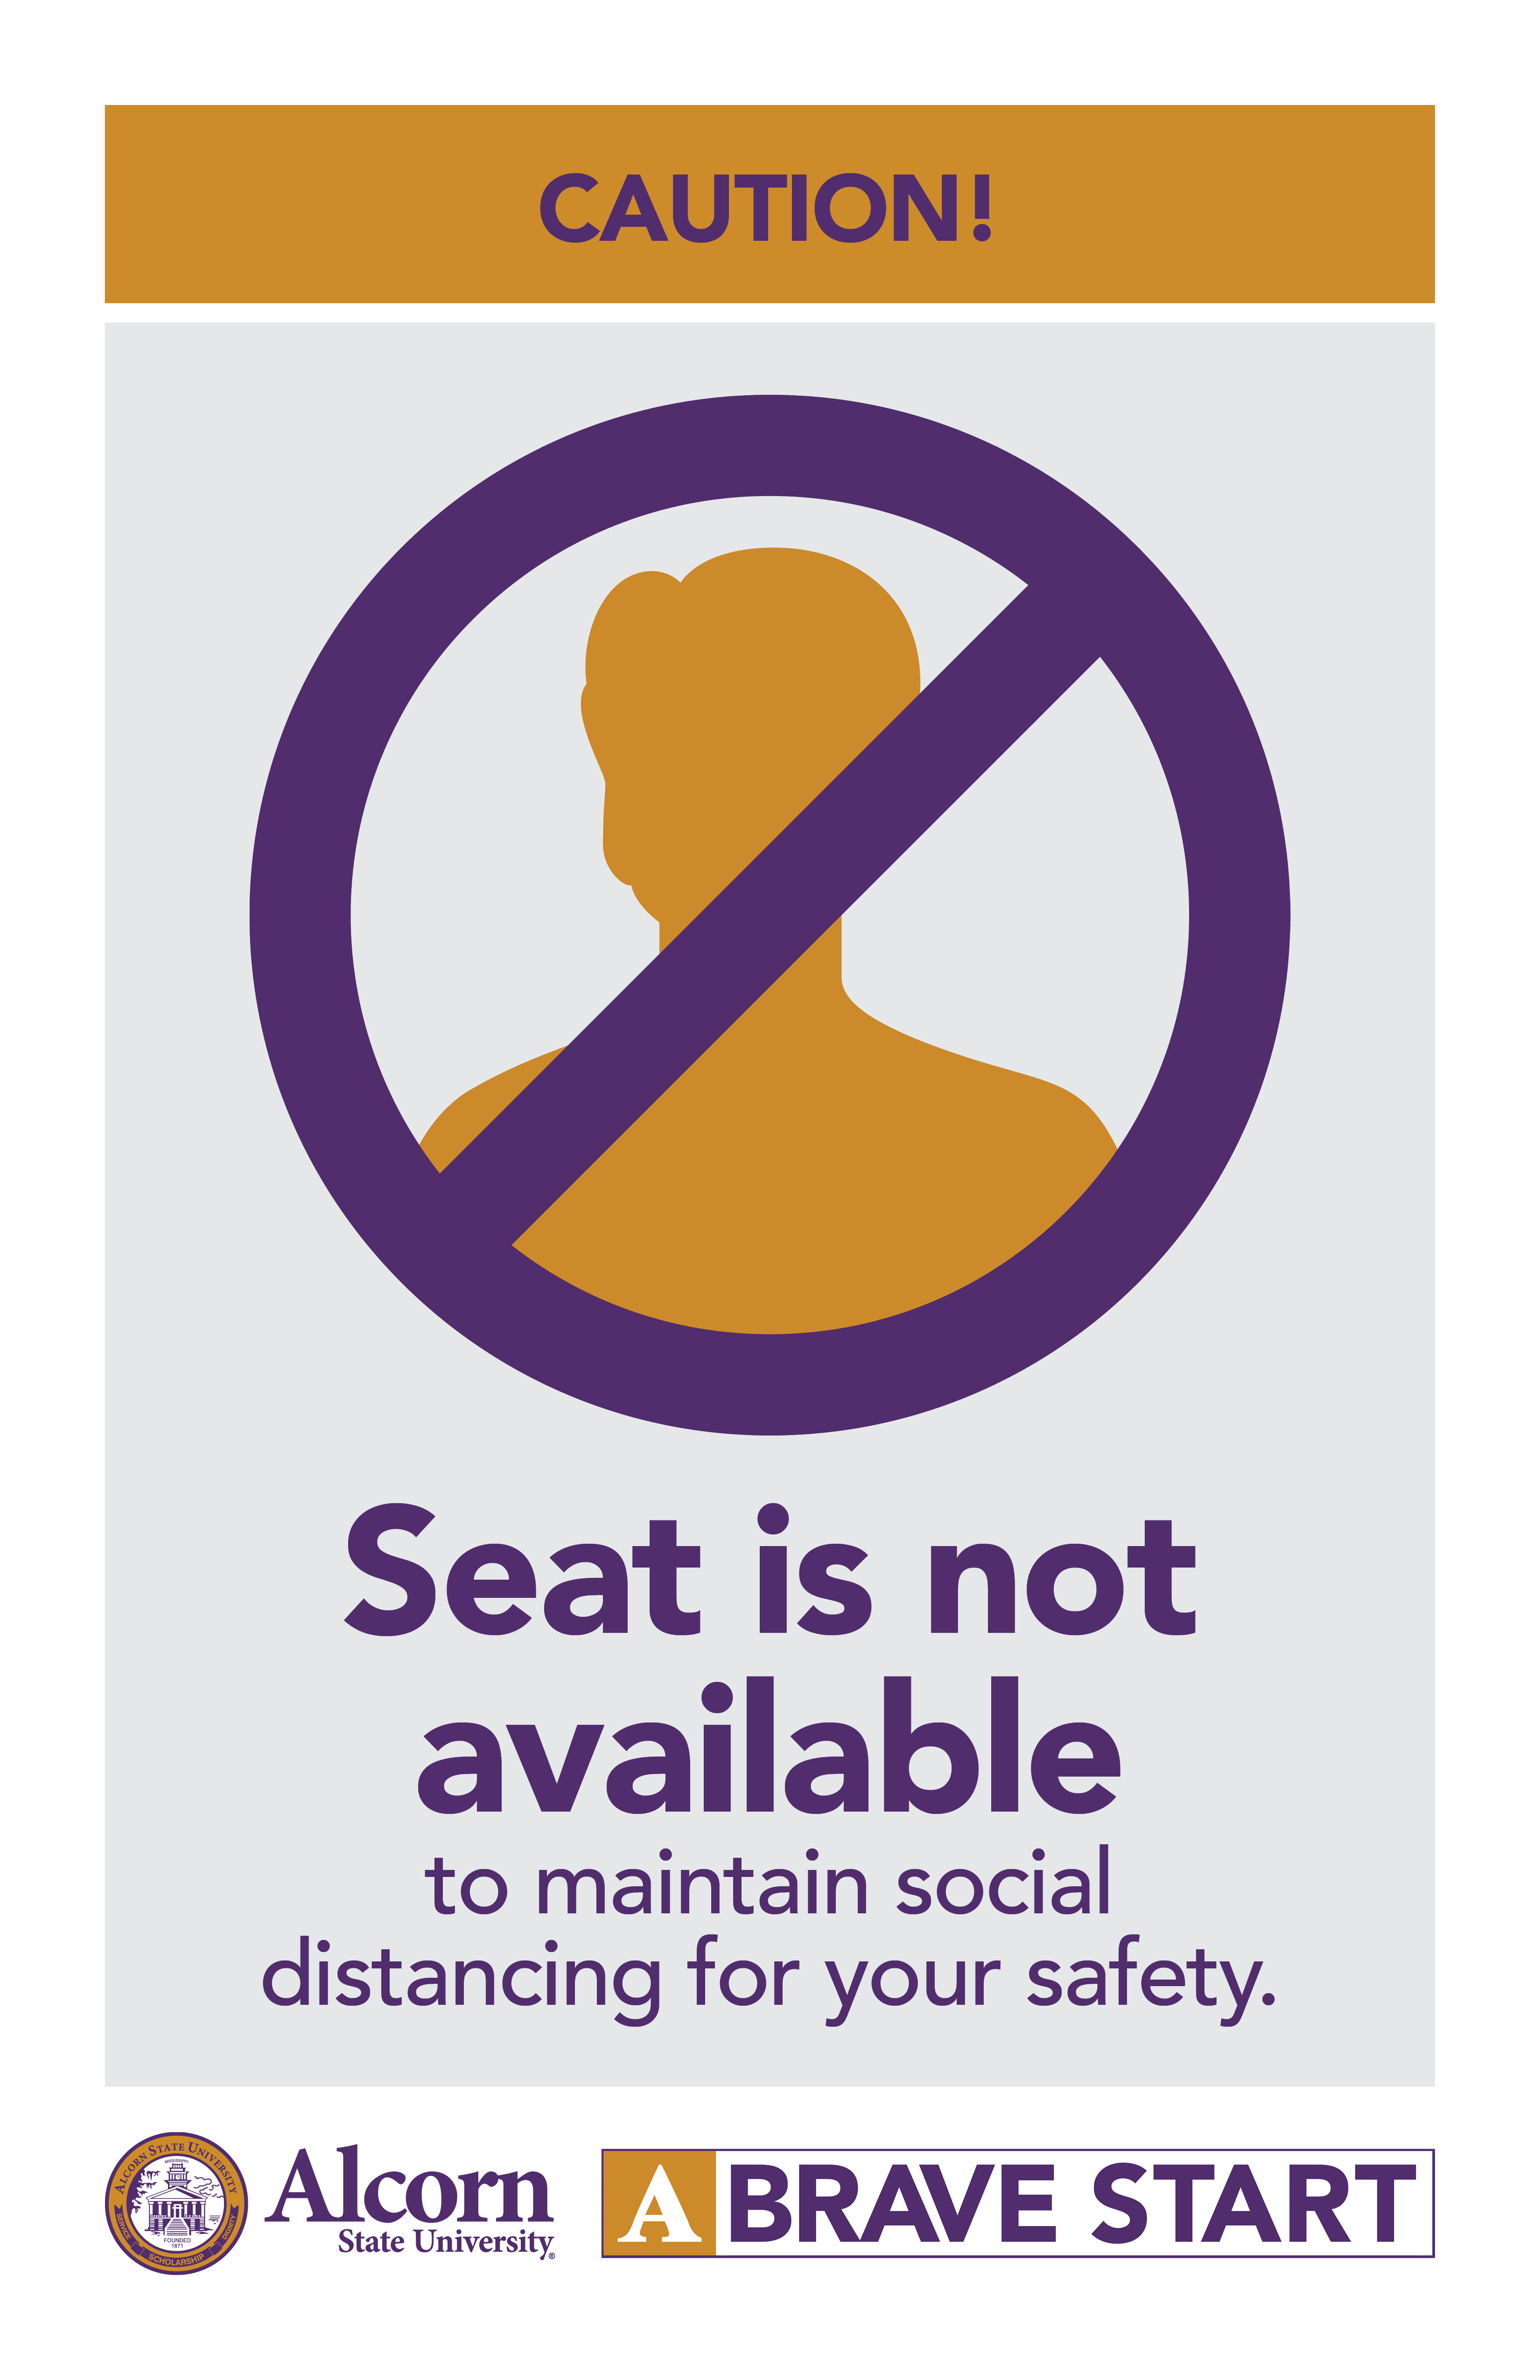 CAUTION! (Picture of a person with a line marked through) Seat is not available to maintain social distancing for your safety. (Alcorn logo mark. A Brave Start logo mark.)